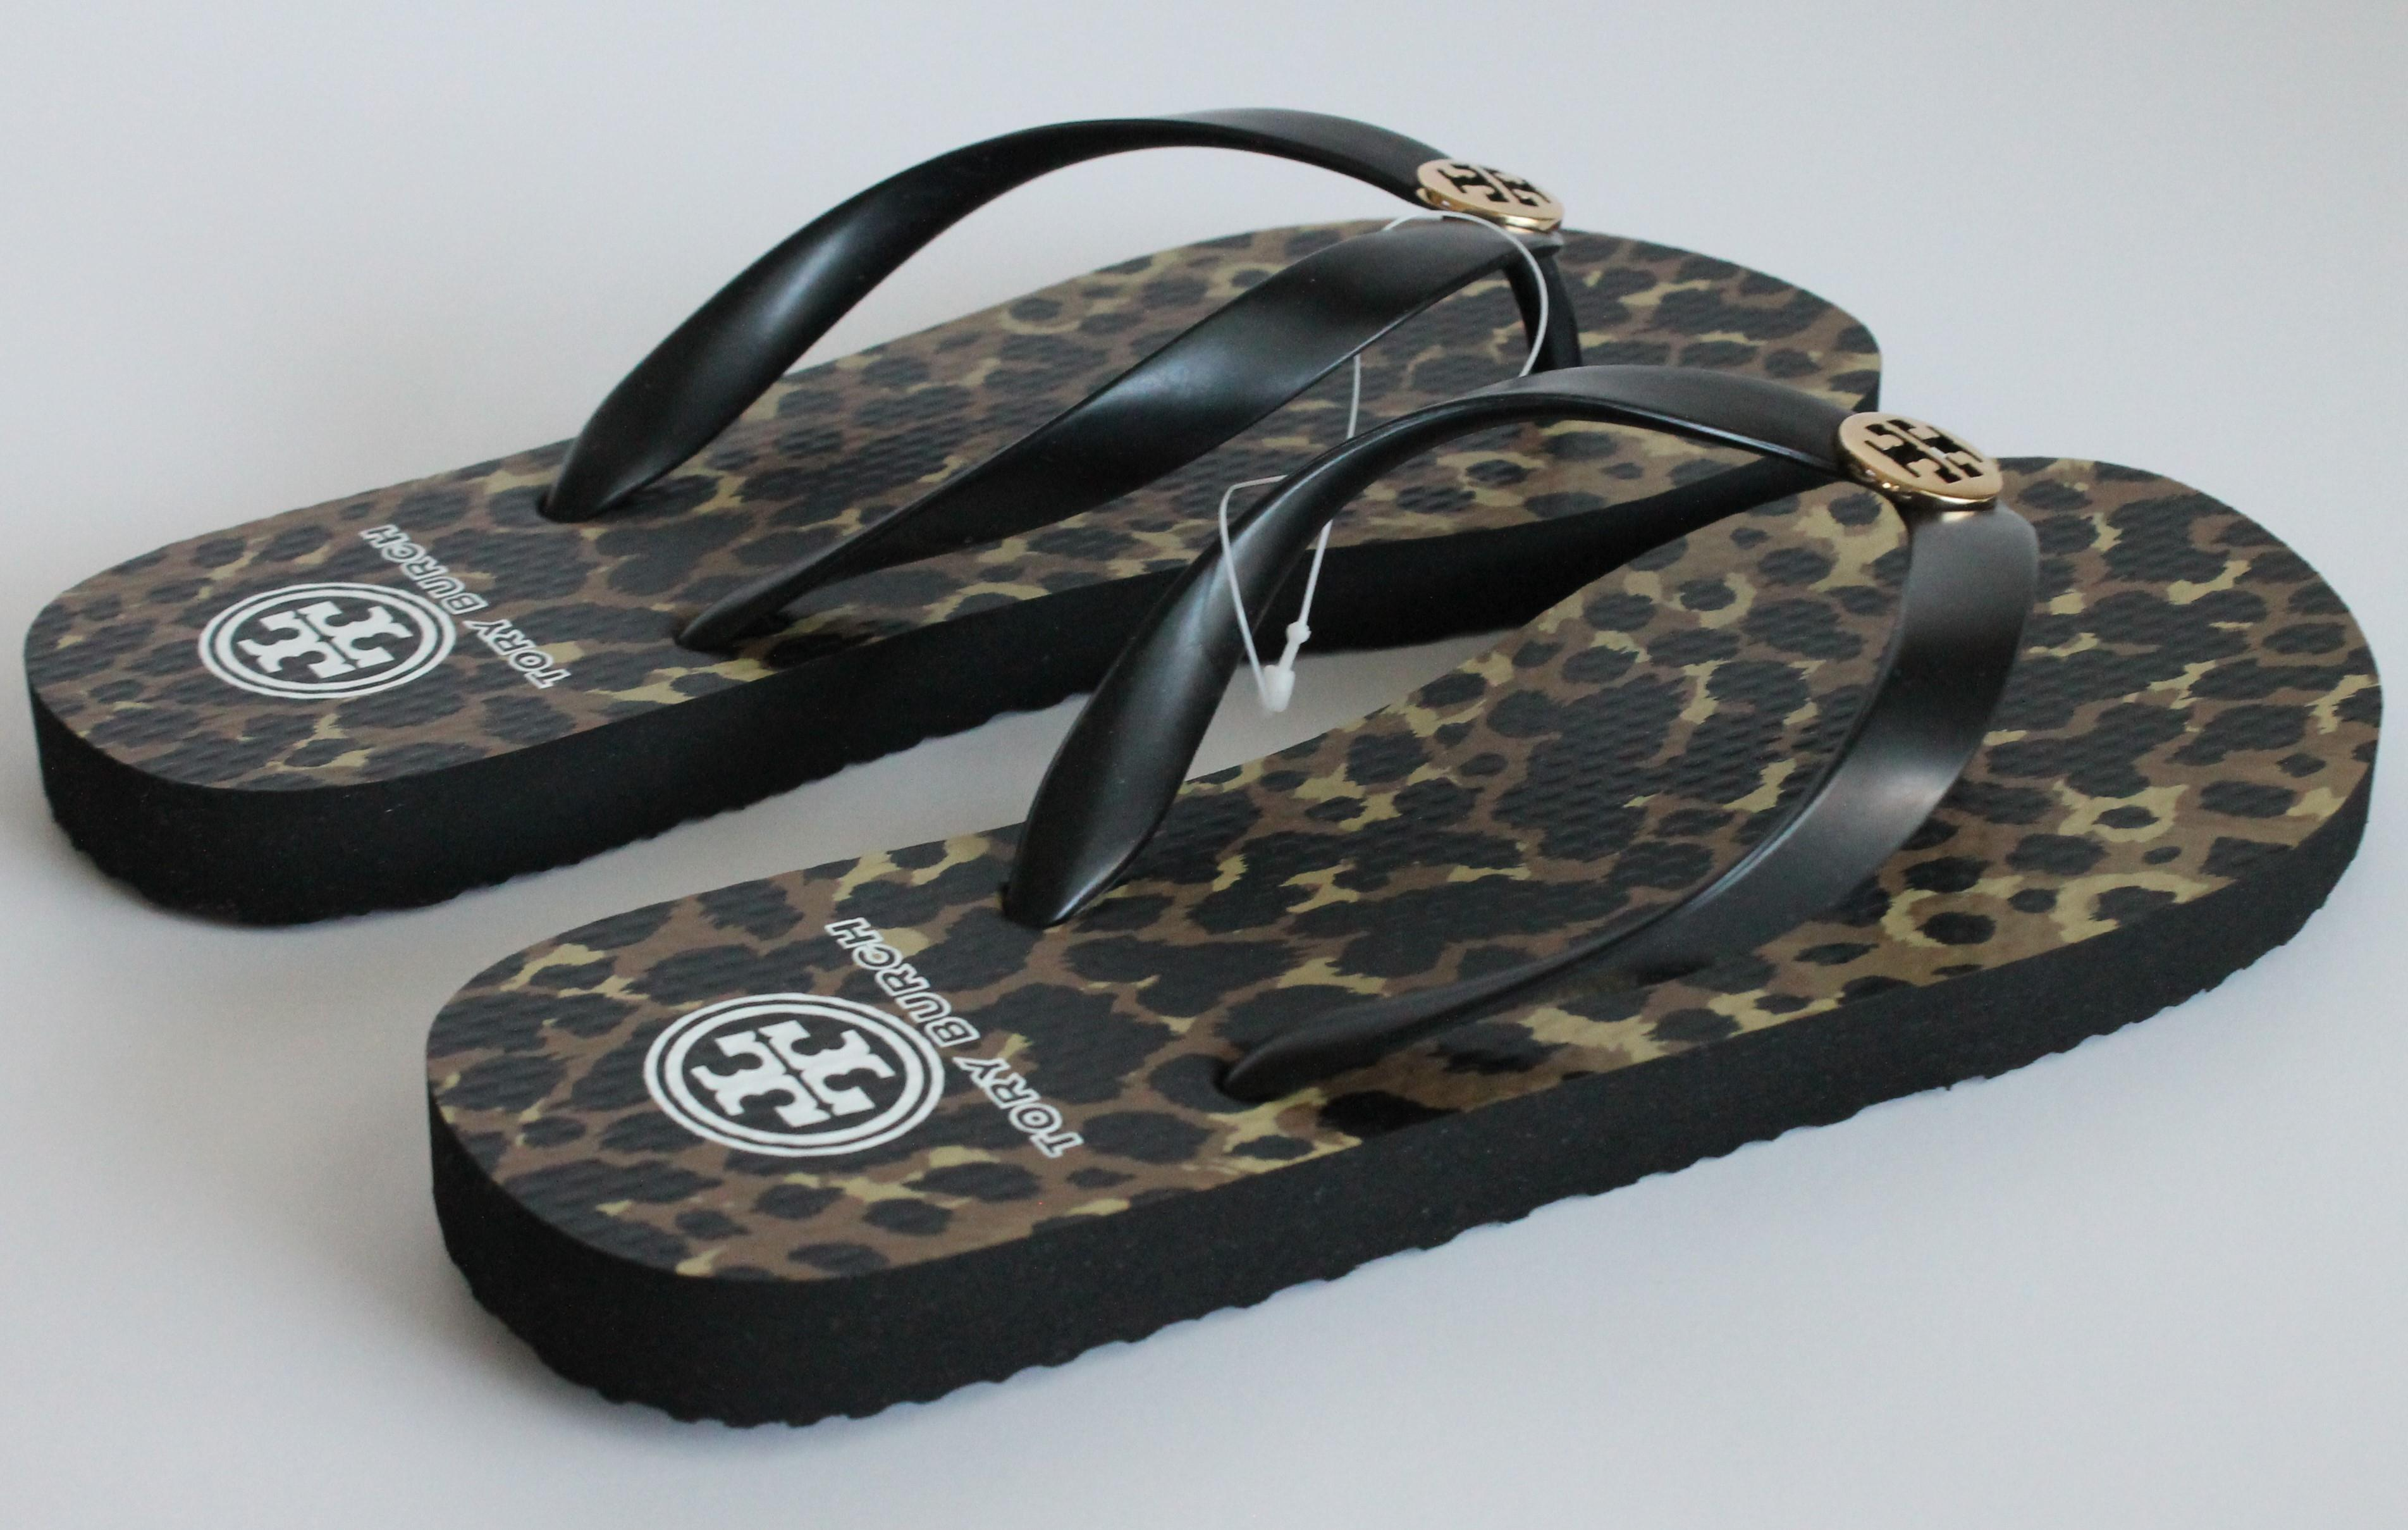 f9356c5d3e04 ... Tory Burch Leopard Black Brown Fleming Fleming Fleming Flat Leather Sandals  Size US 8 Regular ...